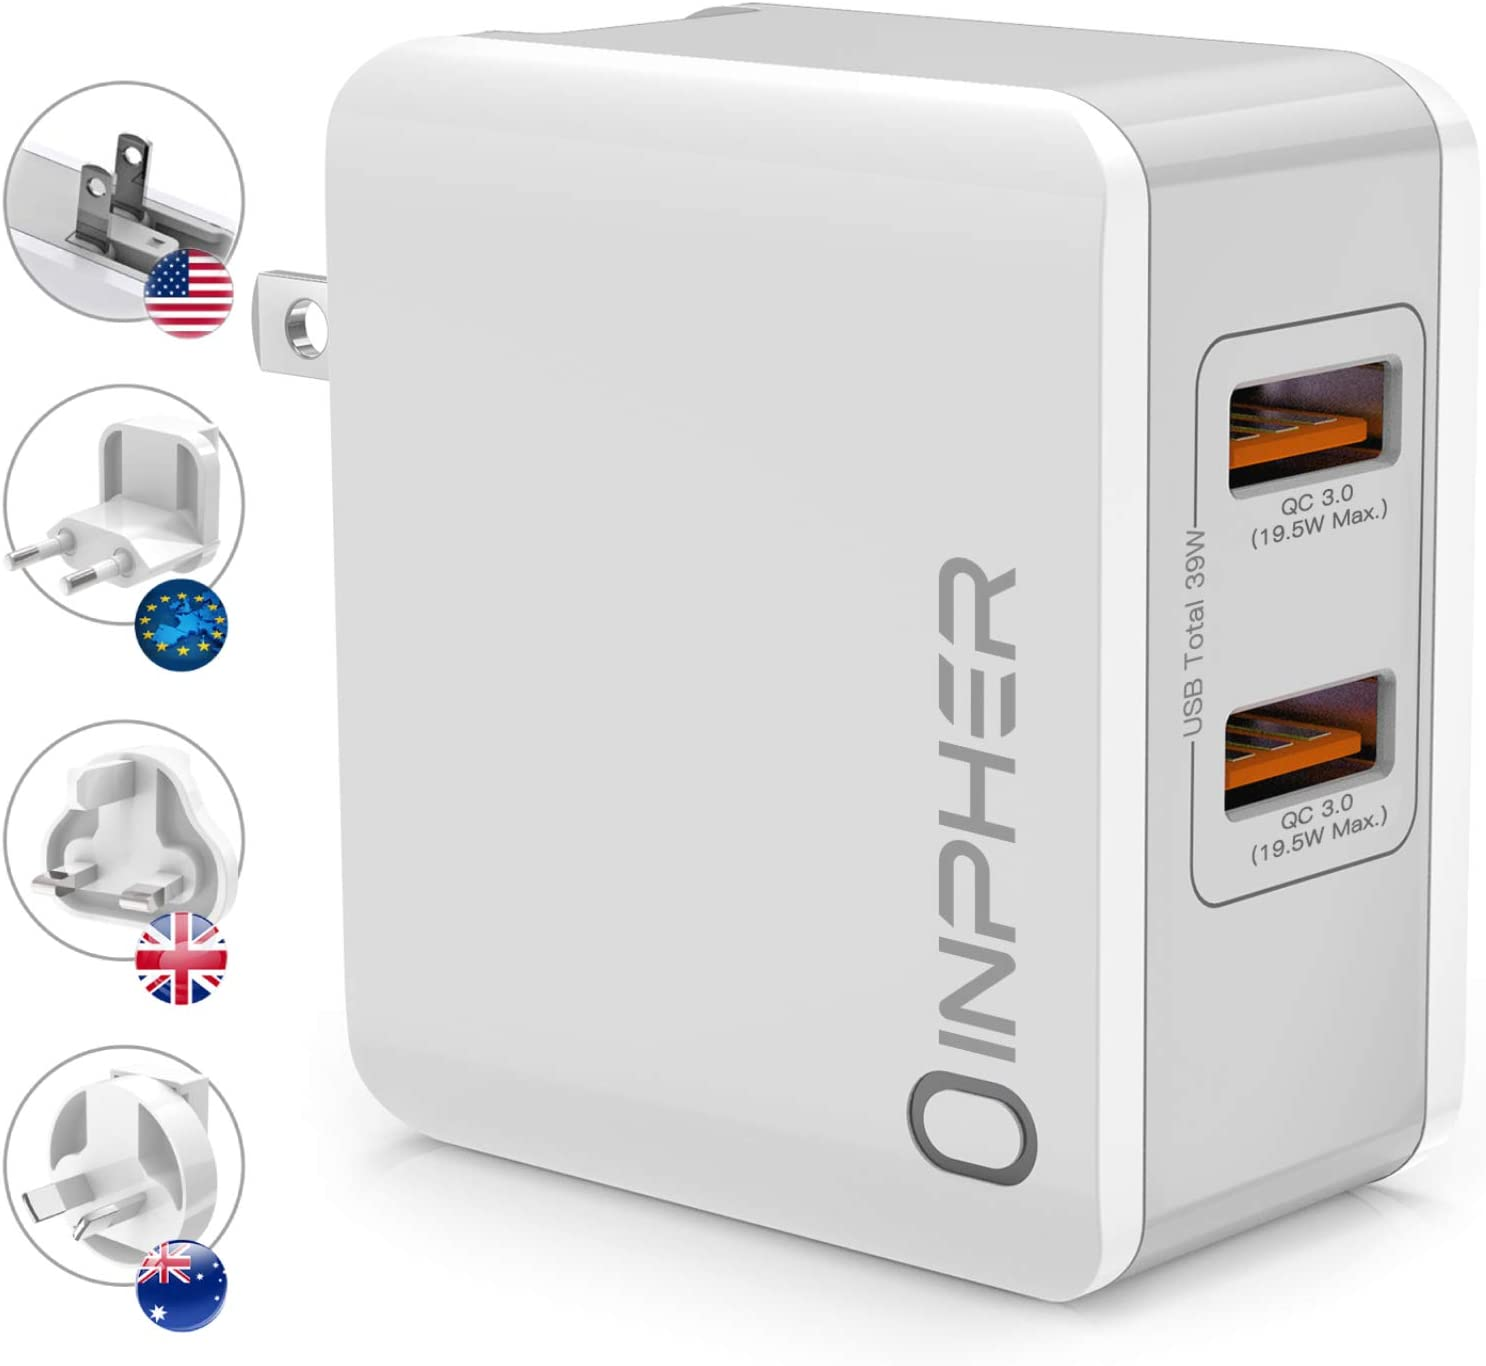 Quick Charge 3.0 39W Dual USB Wall Charger, Inpher Universal Travel Adapter with Replaceable UK/EU/AU Plug, SmartID Technology Compatible Samsung Galaxy, iPhone, iPad, Google Pixel,Tablet and More